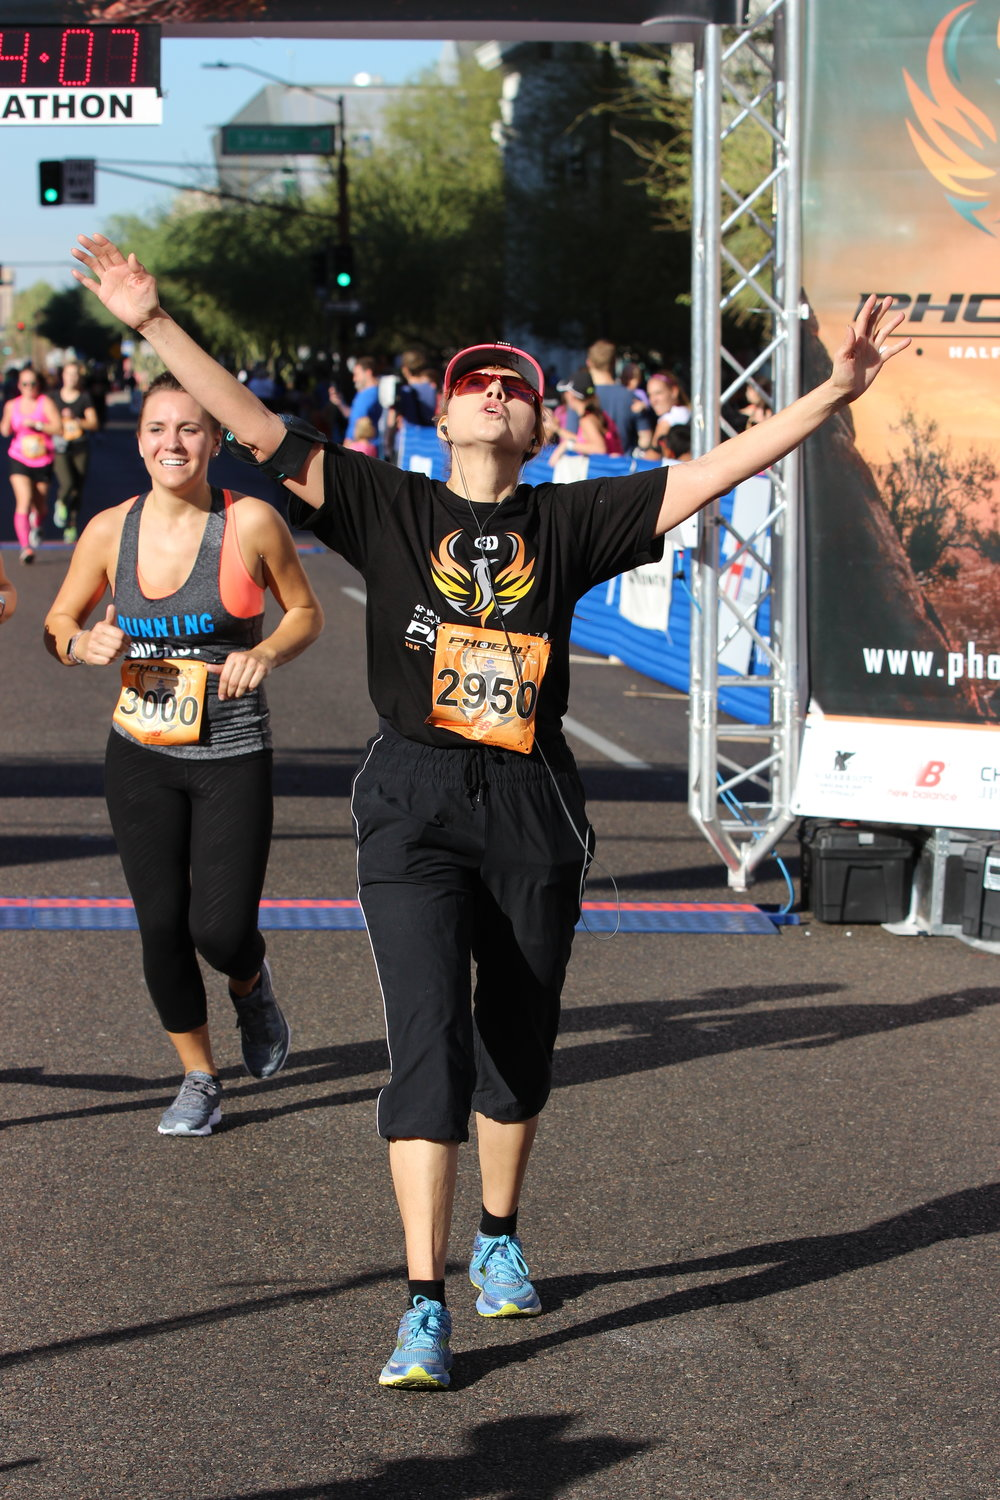 Sandy Owen, 48, throws up her arms after crossing the finish line at the 42nd annual TV Phoenix 10K/Half Marathon in Phoenix, Ariz. on Nov. 5, 2017.